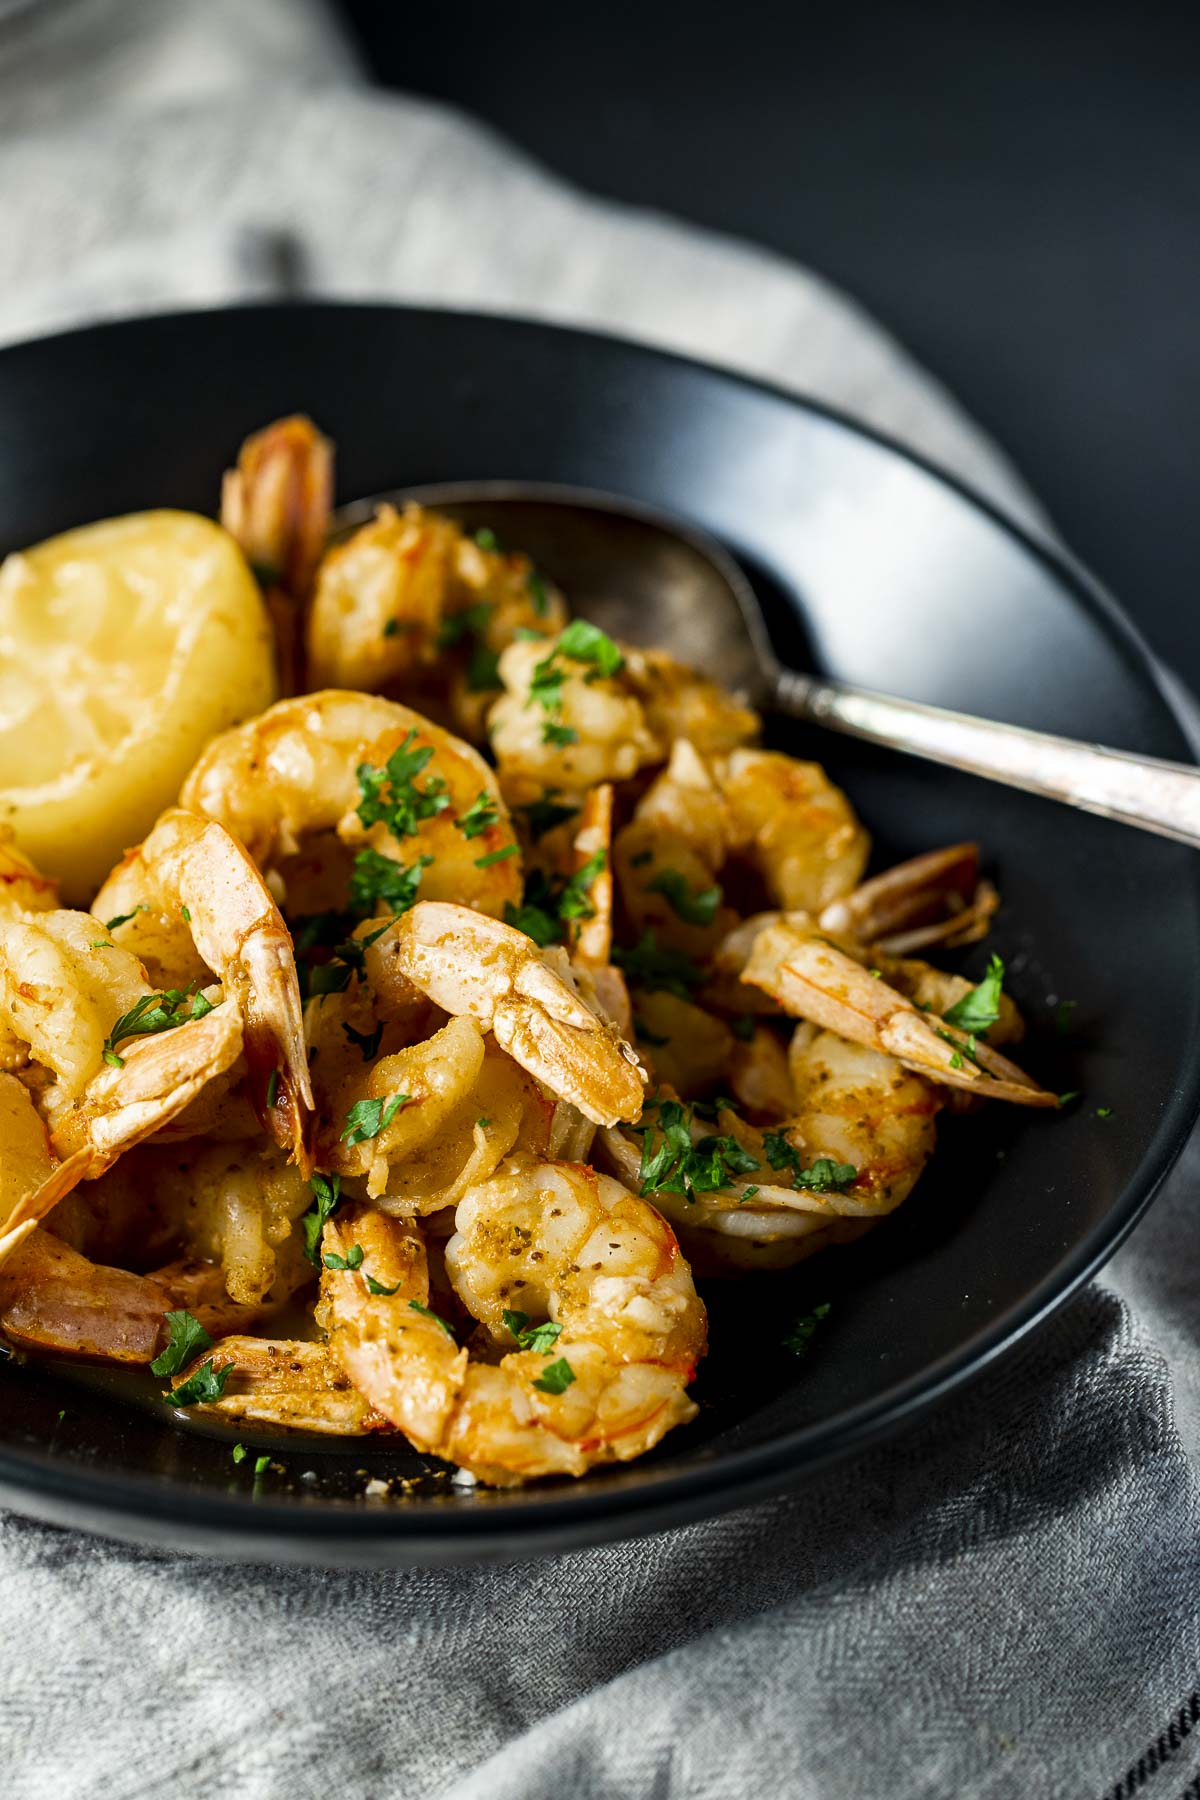 Instant Pot shrimp in a black bowl with a spoon.